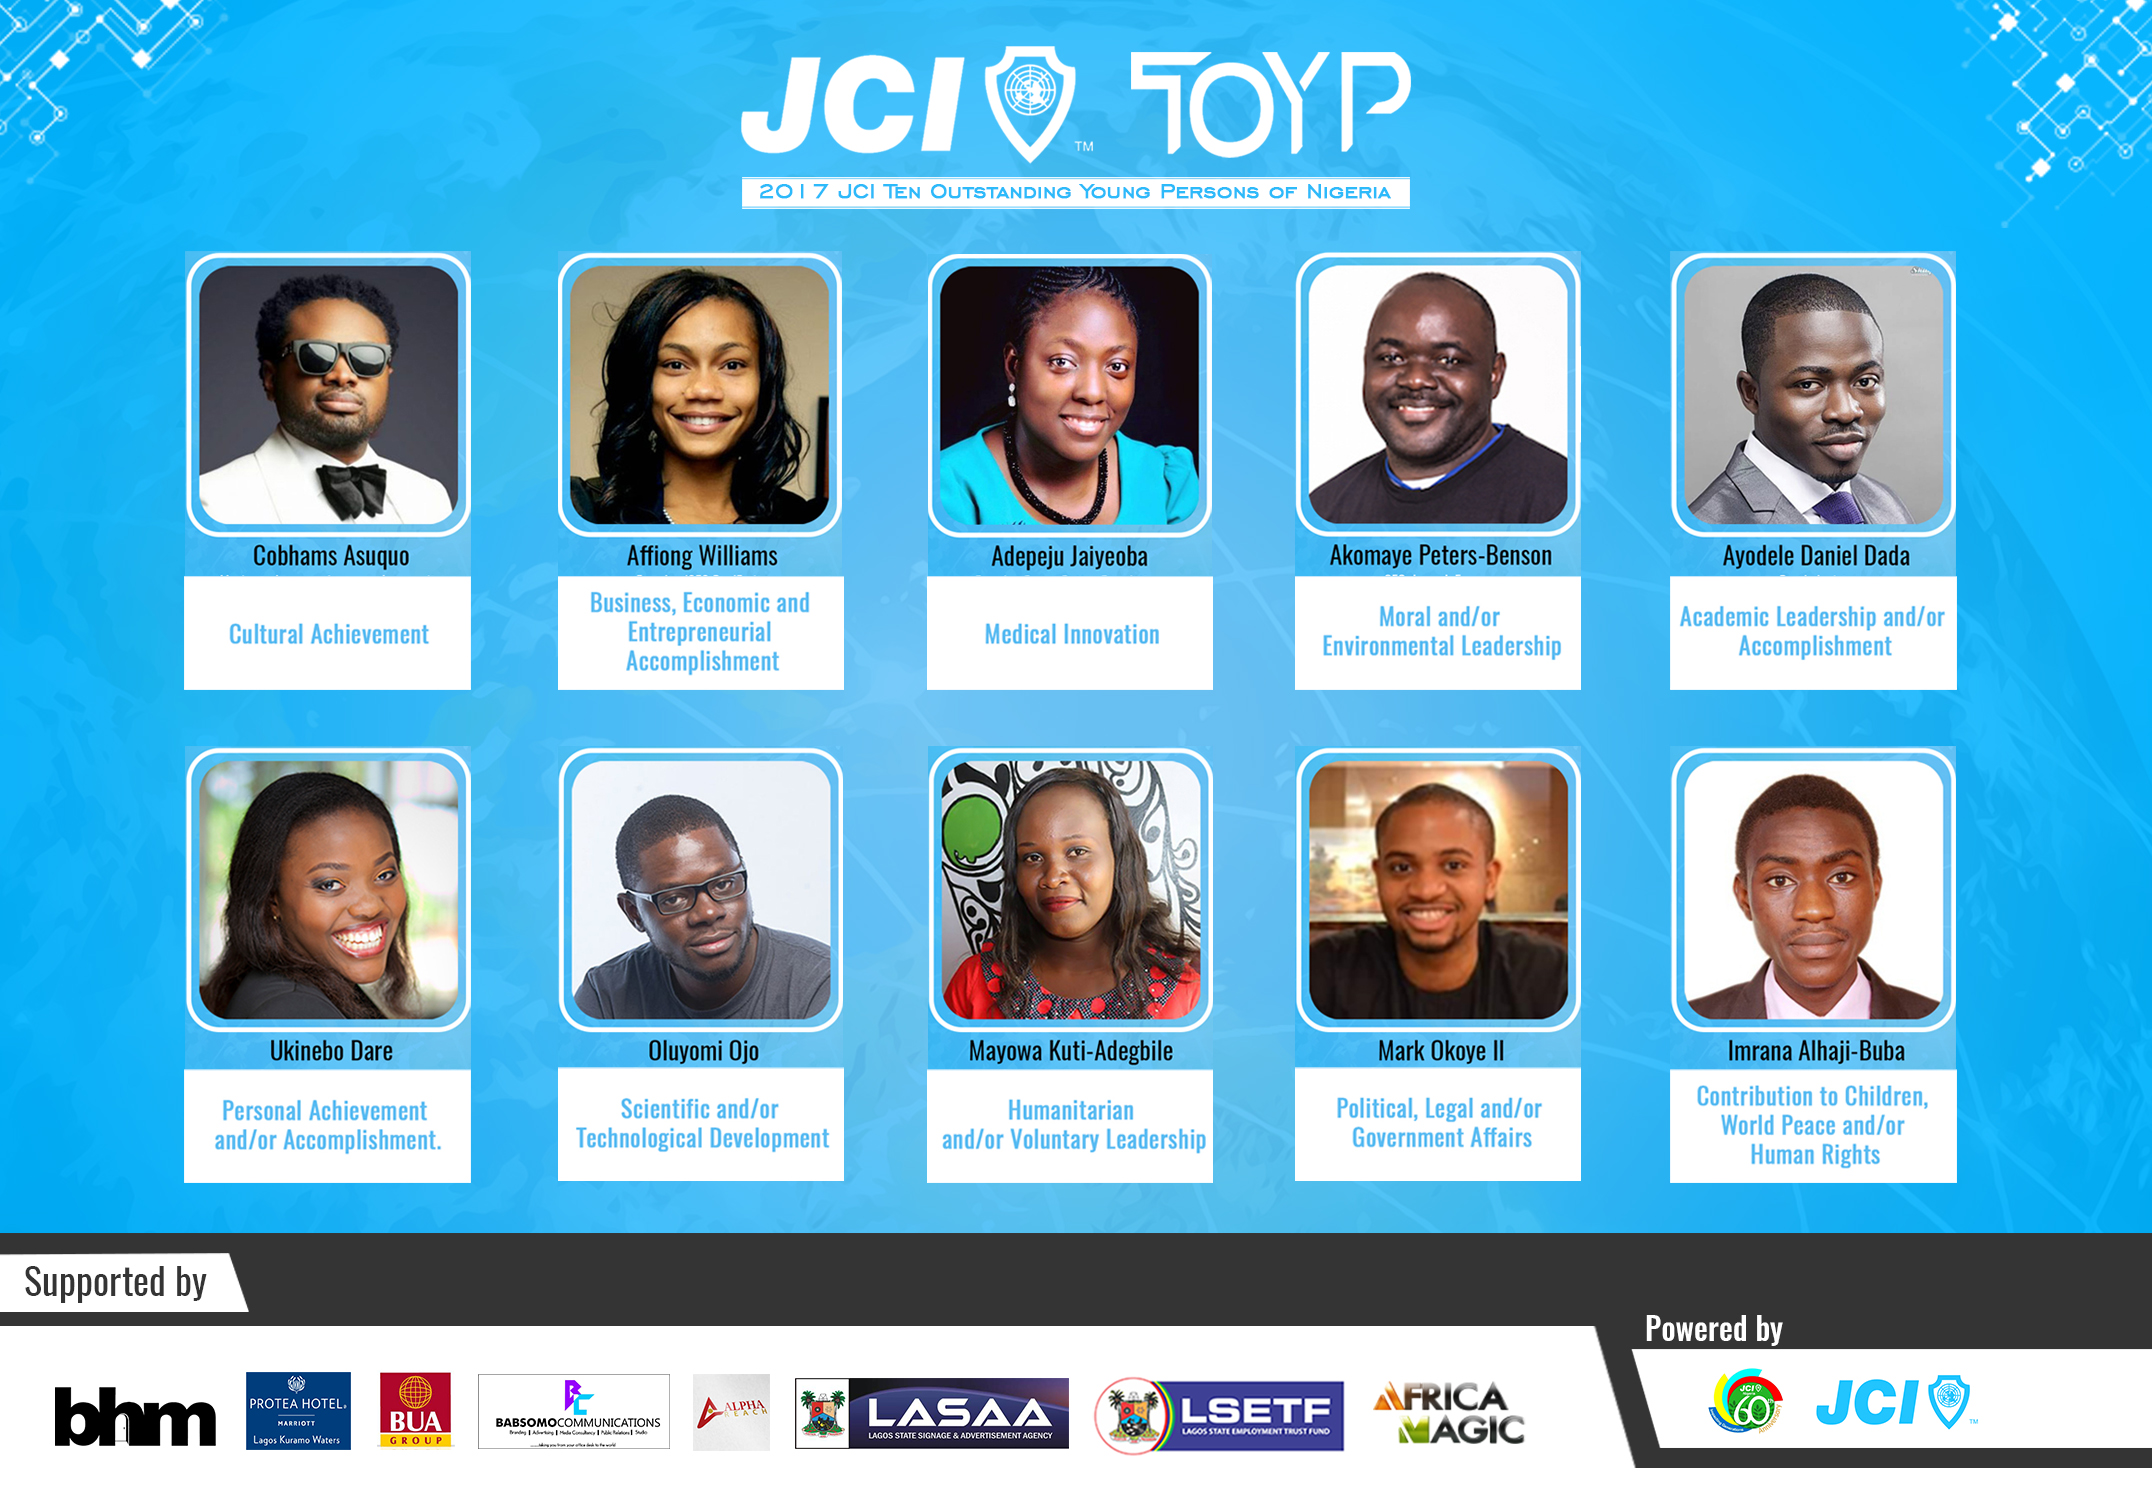 Jci Announces The 2017 Ten Outstanding Young Persons Of Nigeria (Jci Toyp) Award Recipients